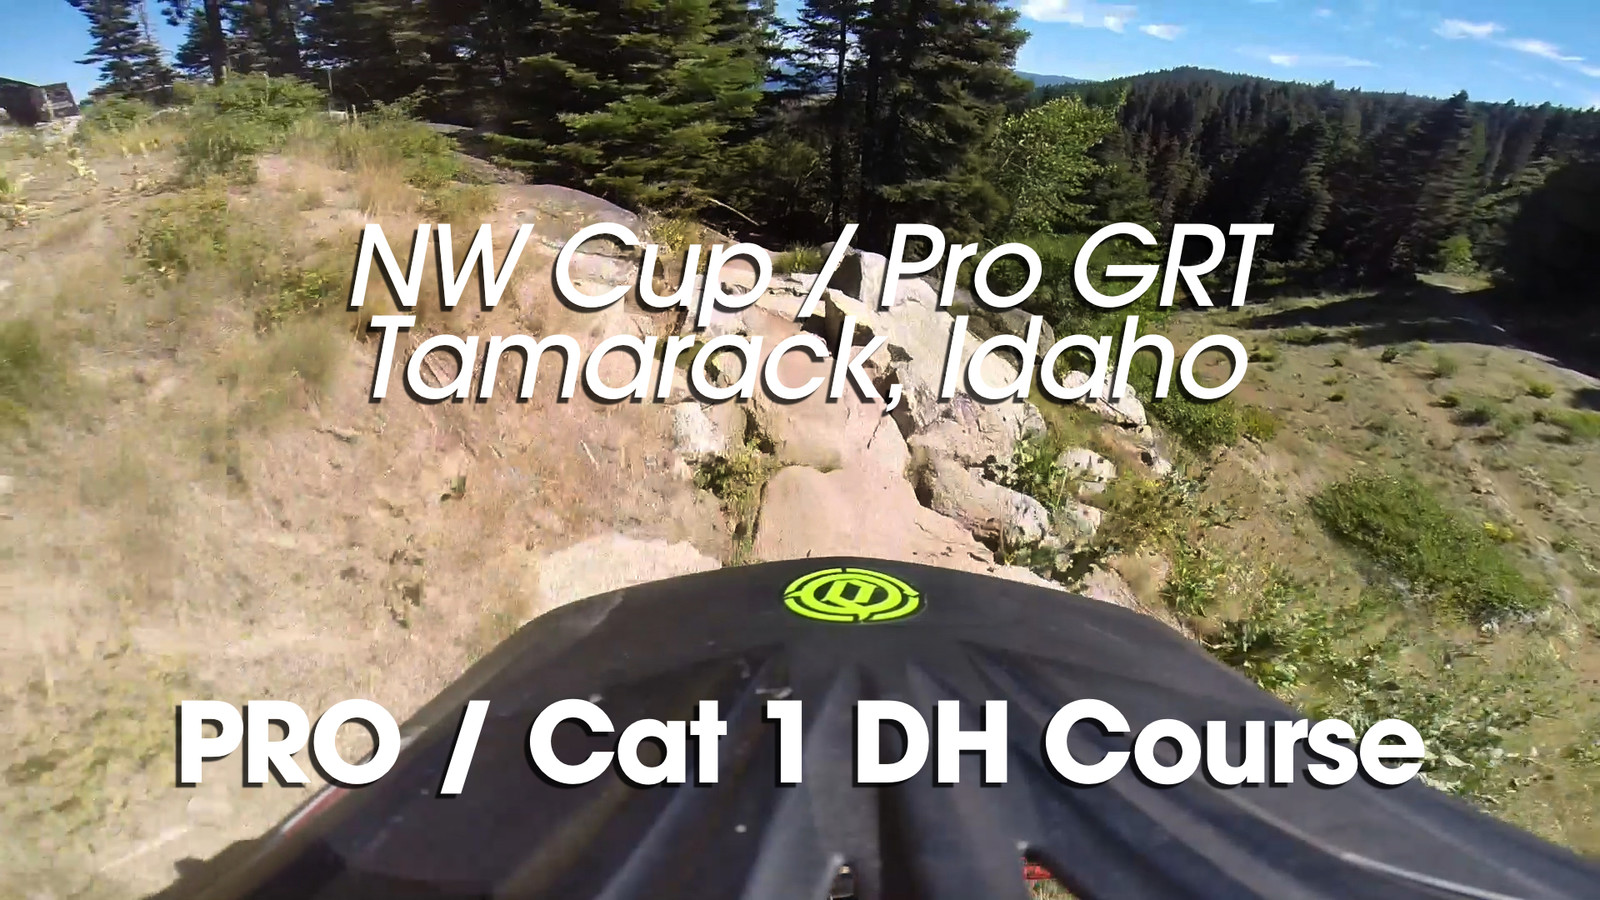 NW Cup / Pro GRT DH Course Previews with Griz